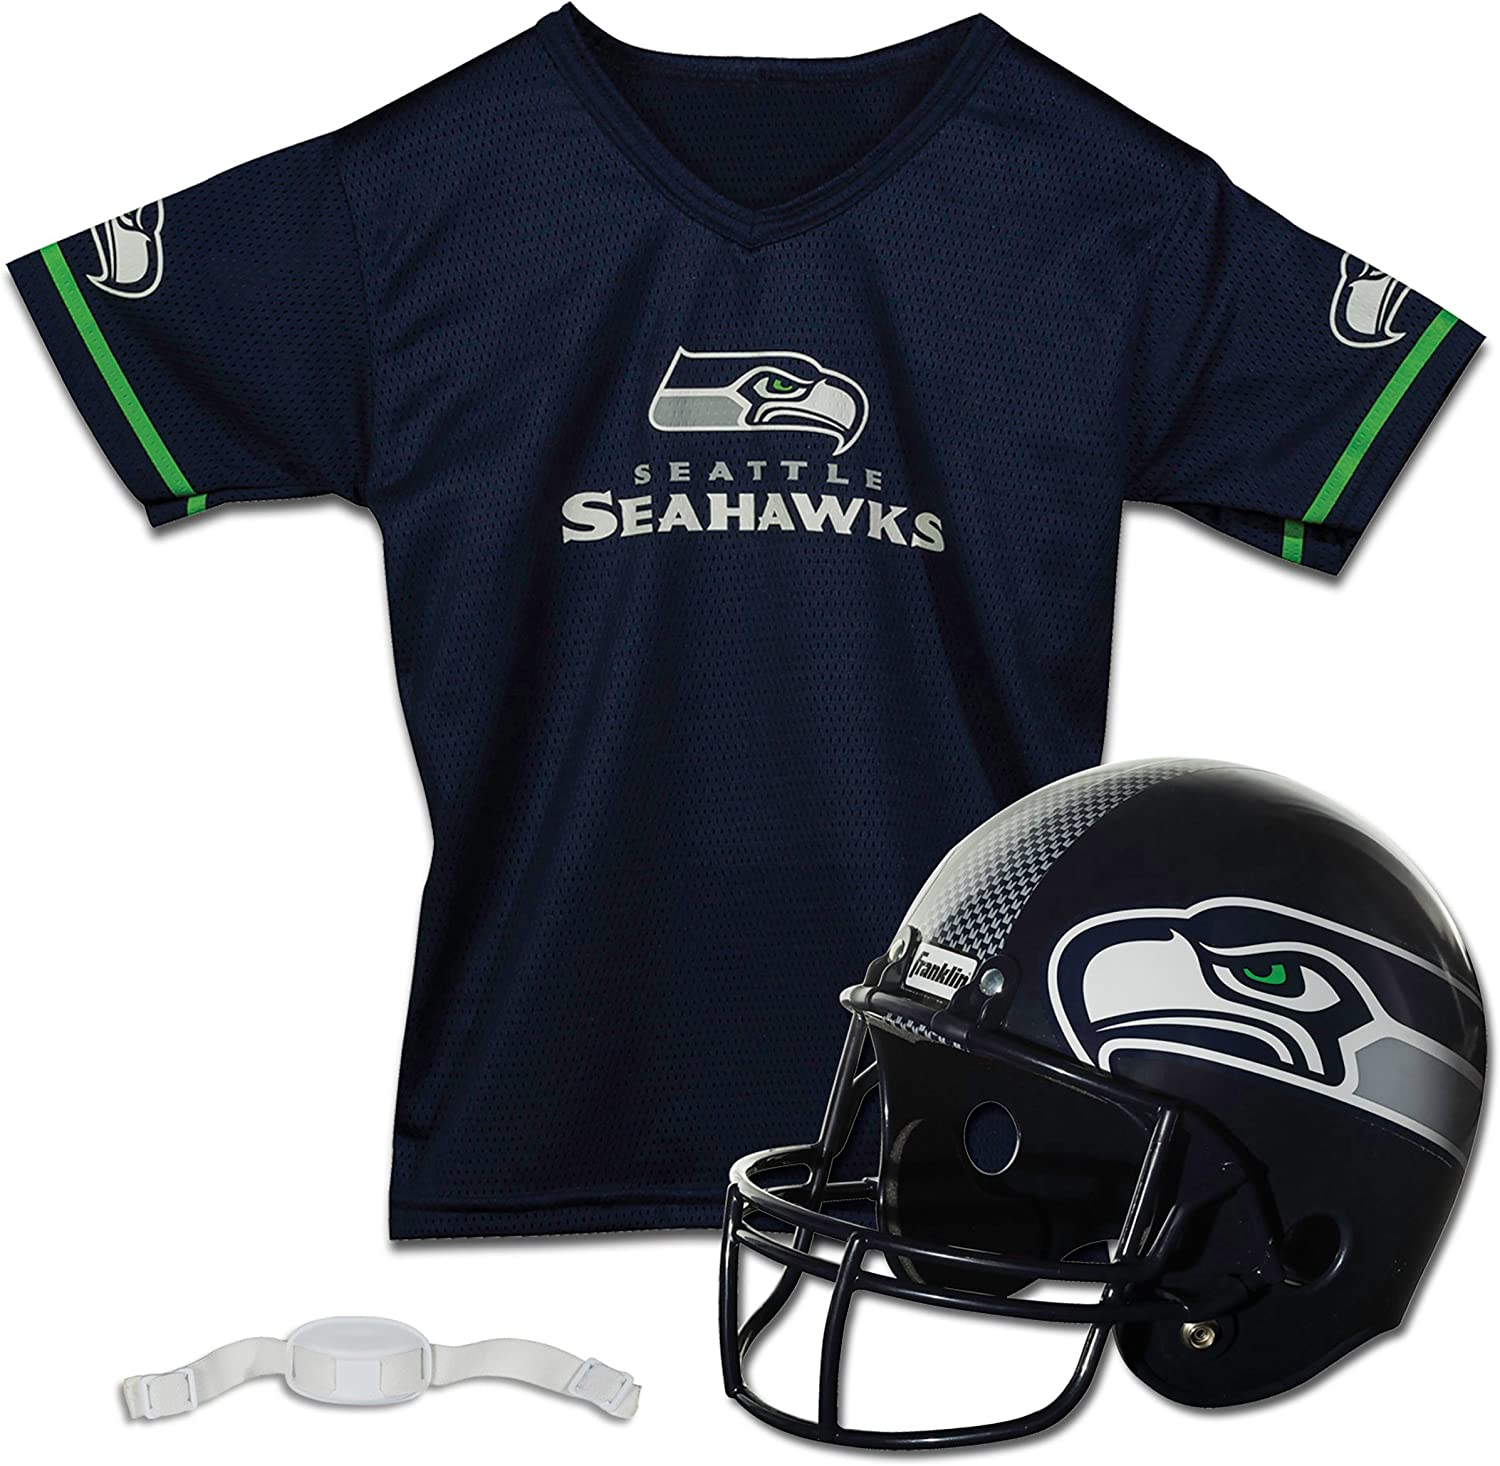 Franklin Sports Seattle Seahawks Kids Football Helmet and Jersey Set - NFL Youth Football Uniform Costume - Helmet, Jersey, Chinstrap - Youth M